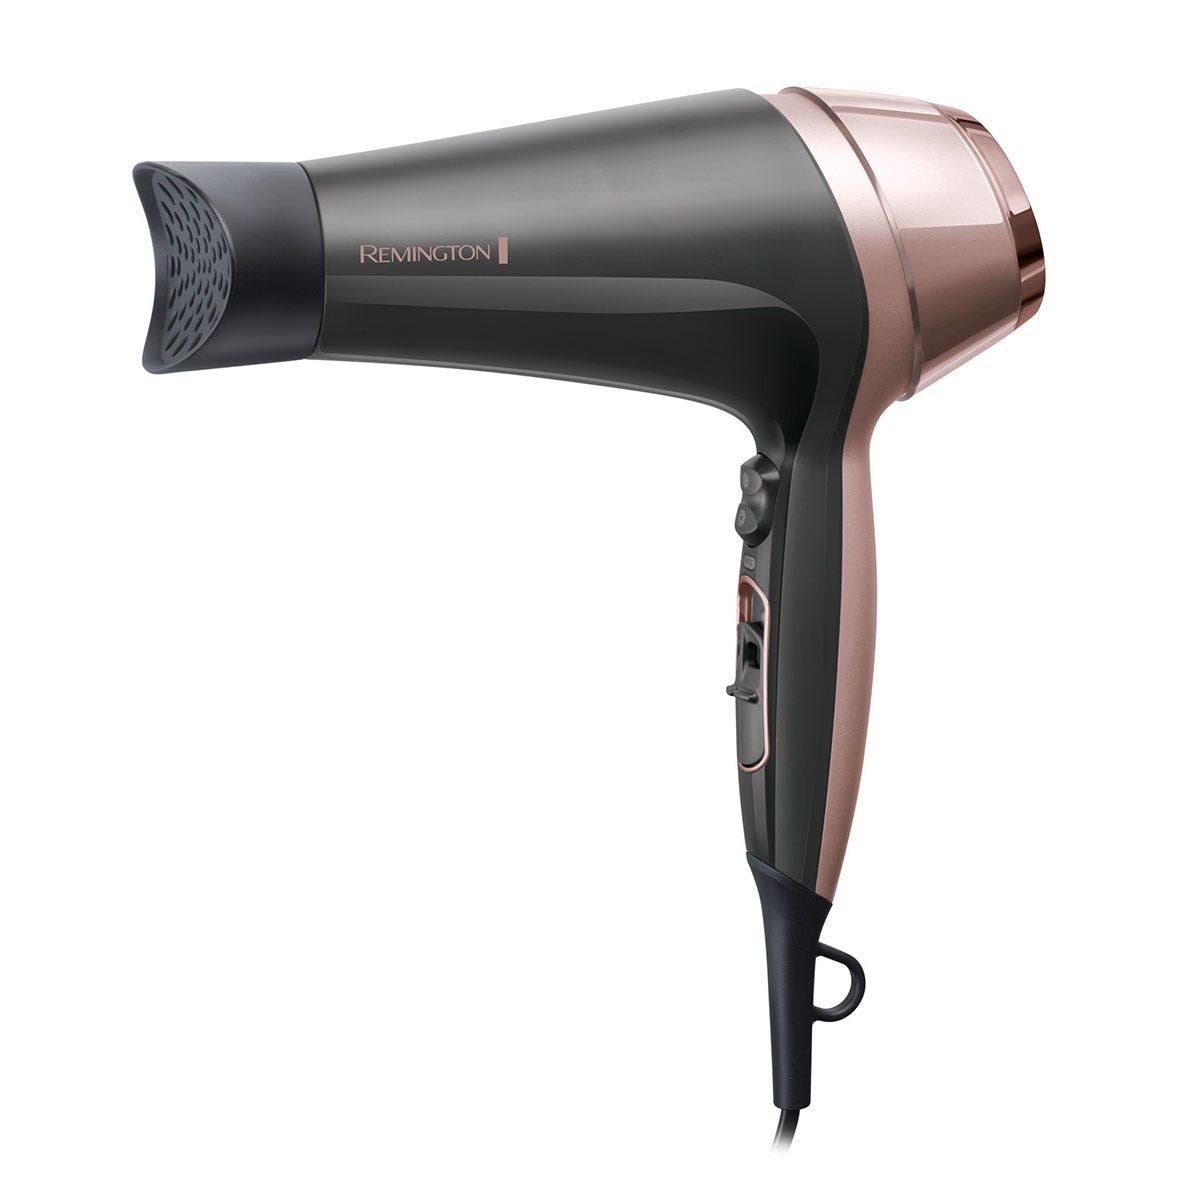 Remington D5706 2200W Curl & Straight Confidence Hair Dryer - Grey & Pink